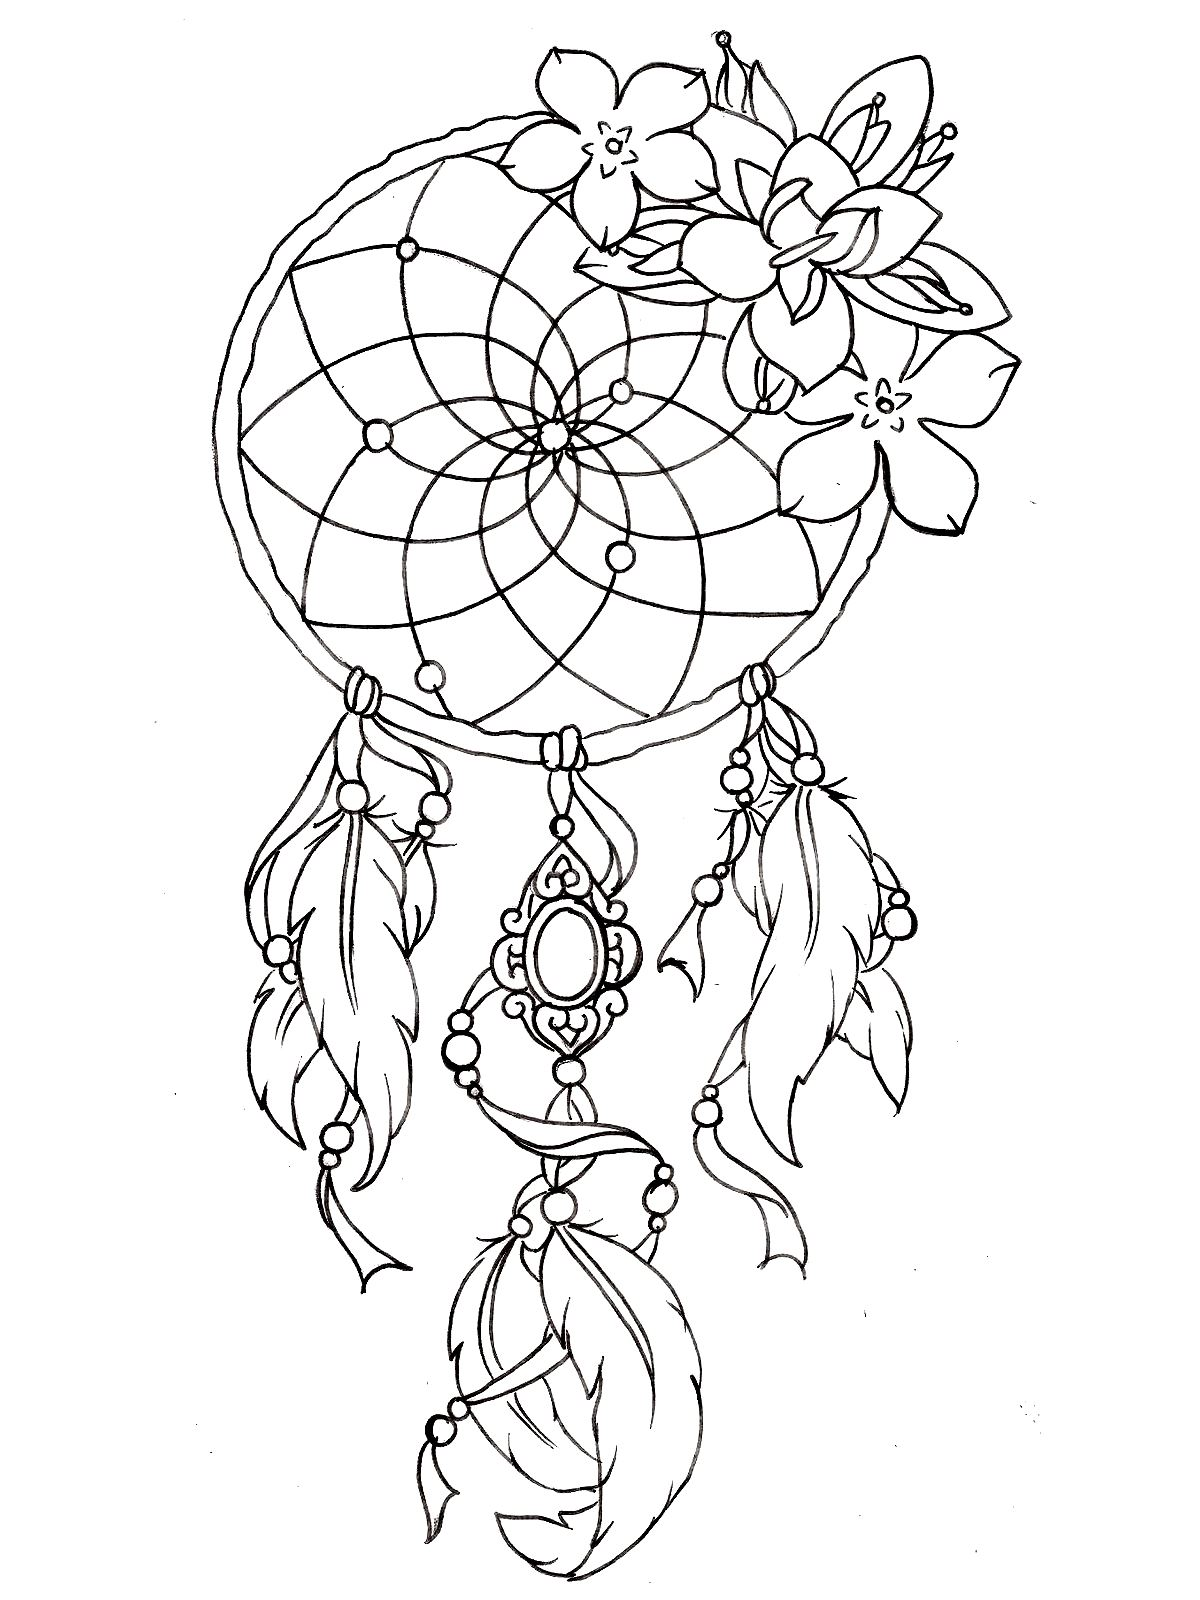 dreamcatcher tattoo designs tattoos adult coloring pages. Black Bedroom Furniture Sets. Home Design Ideas